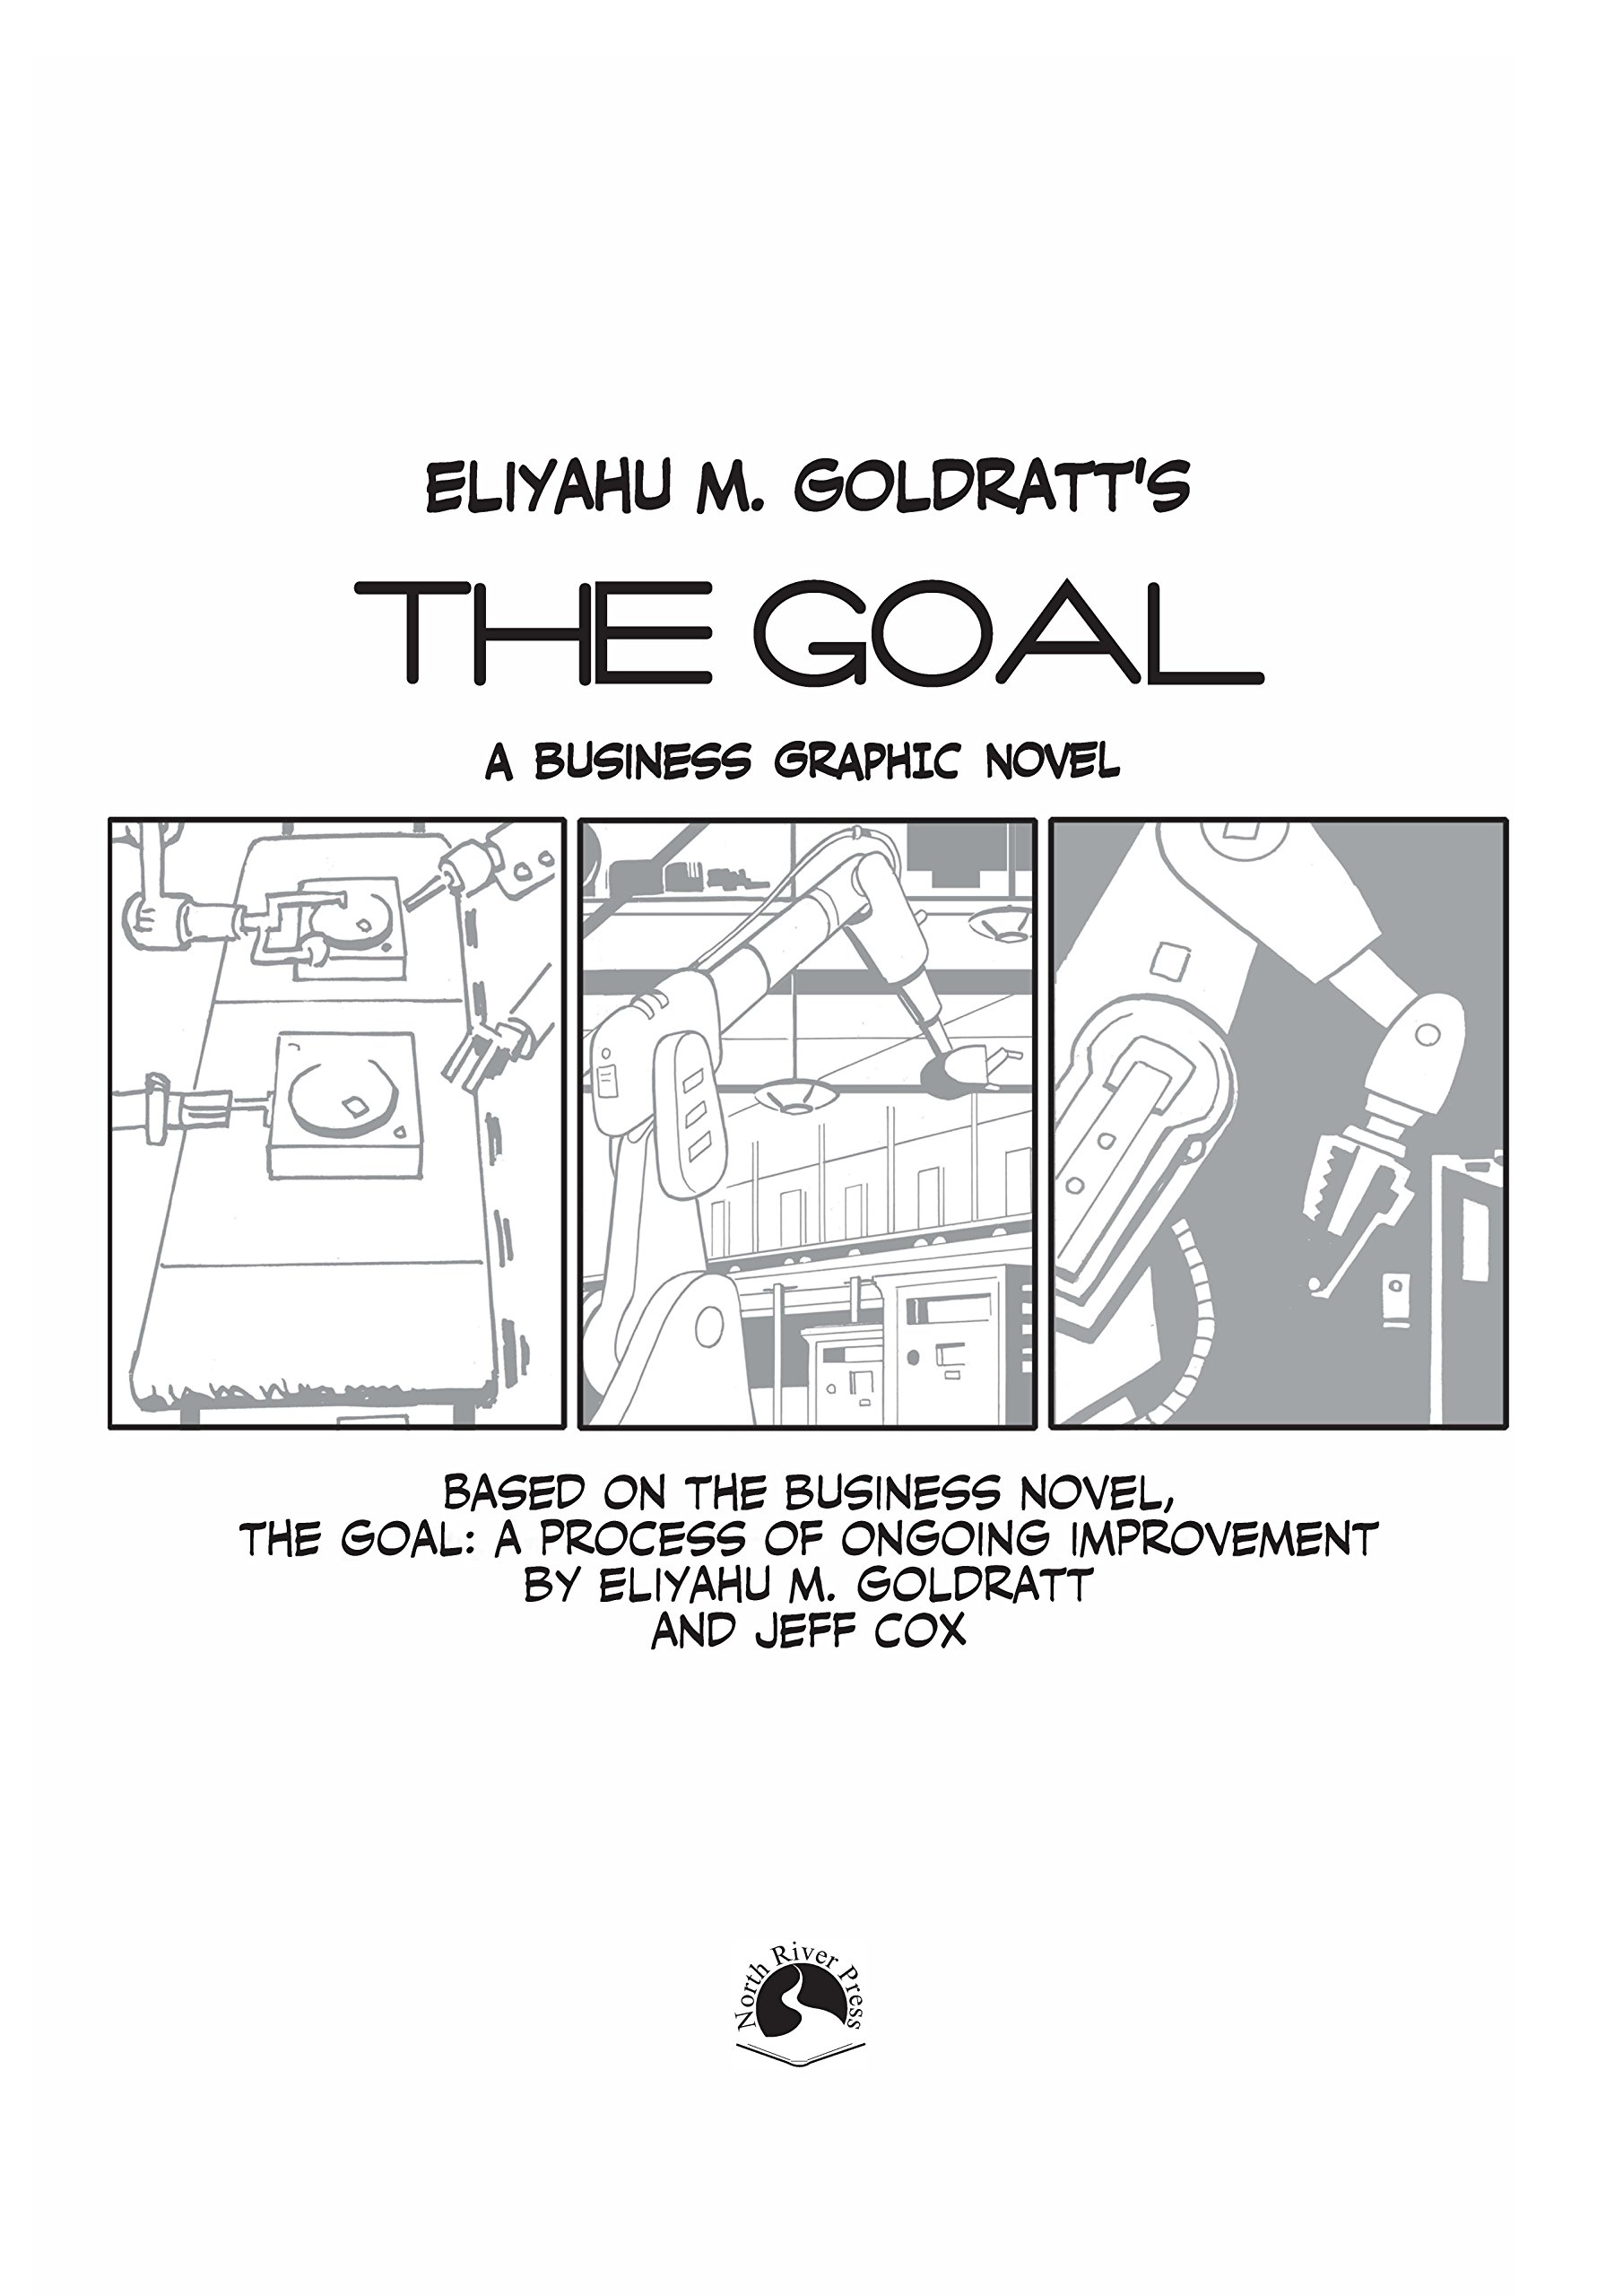 com the goal a business graphic novel  com the goal a business graphic novel 9780884272076 eliyahu m goldratt dwight jon zimmerman dean motter books